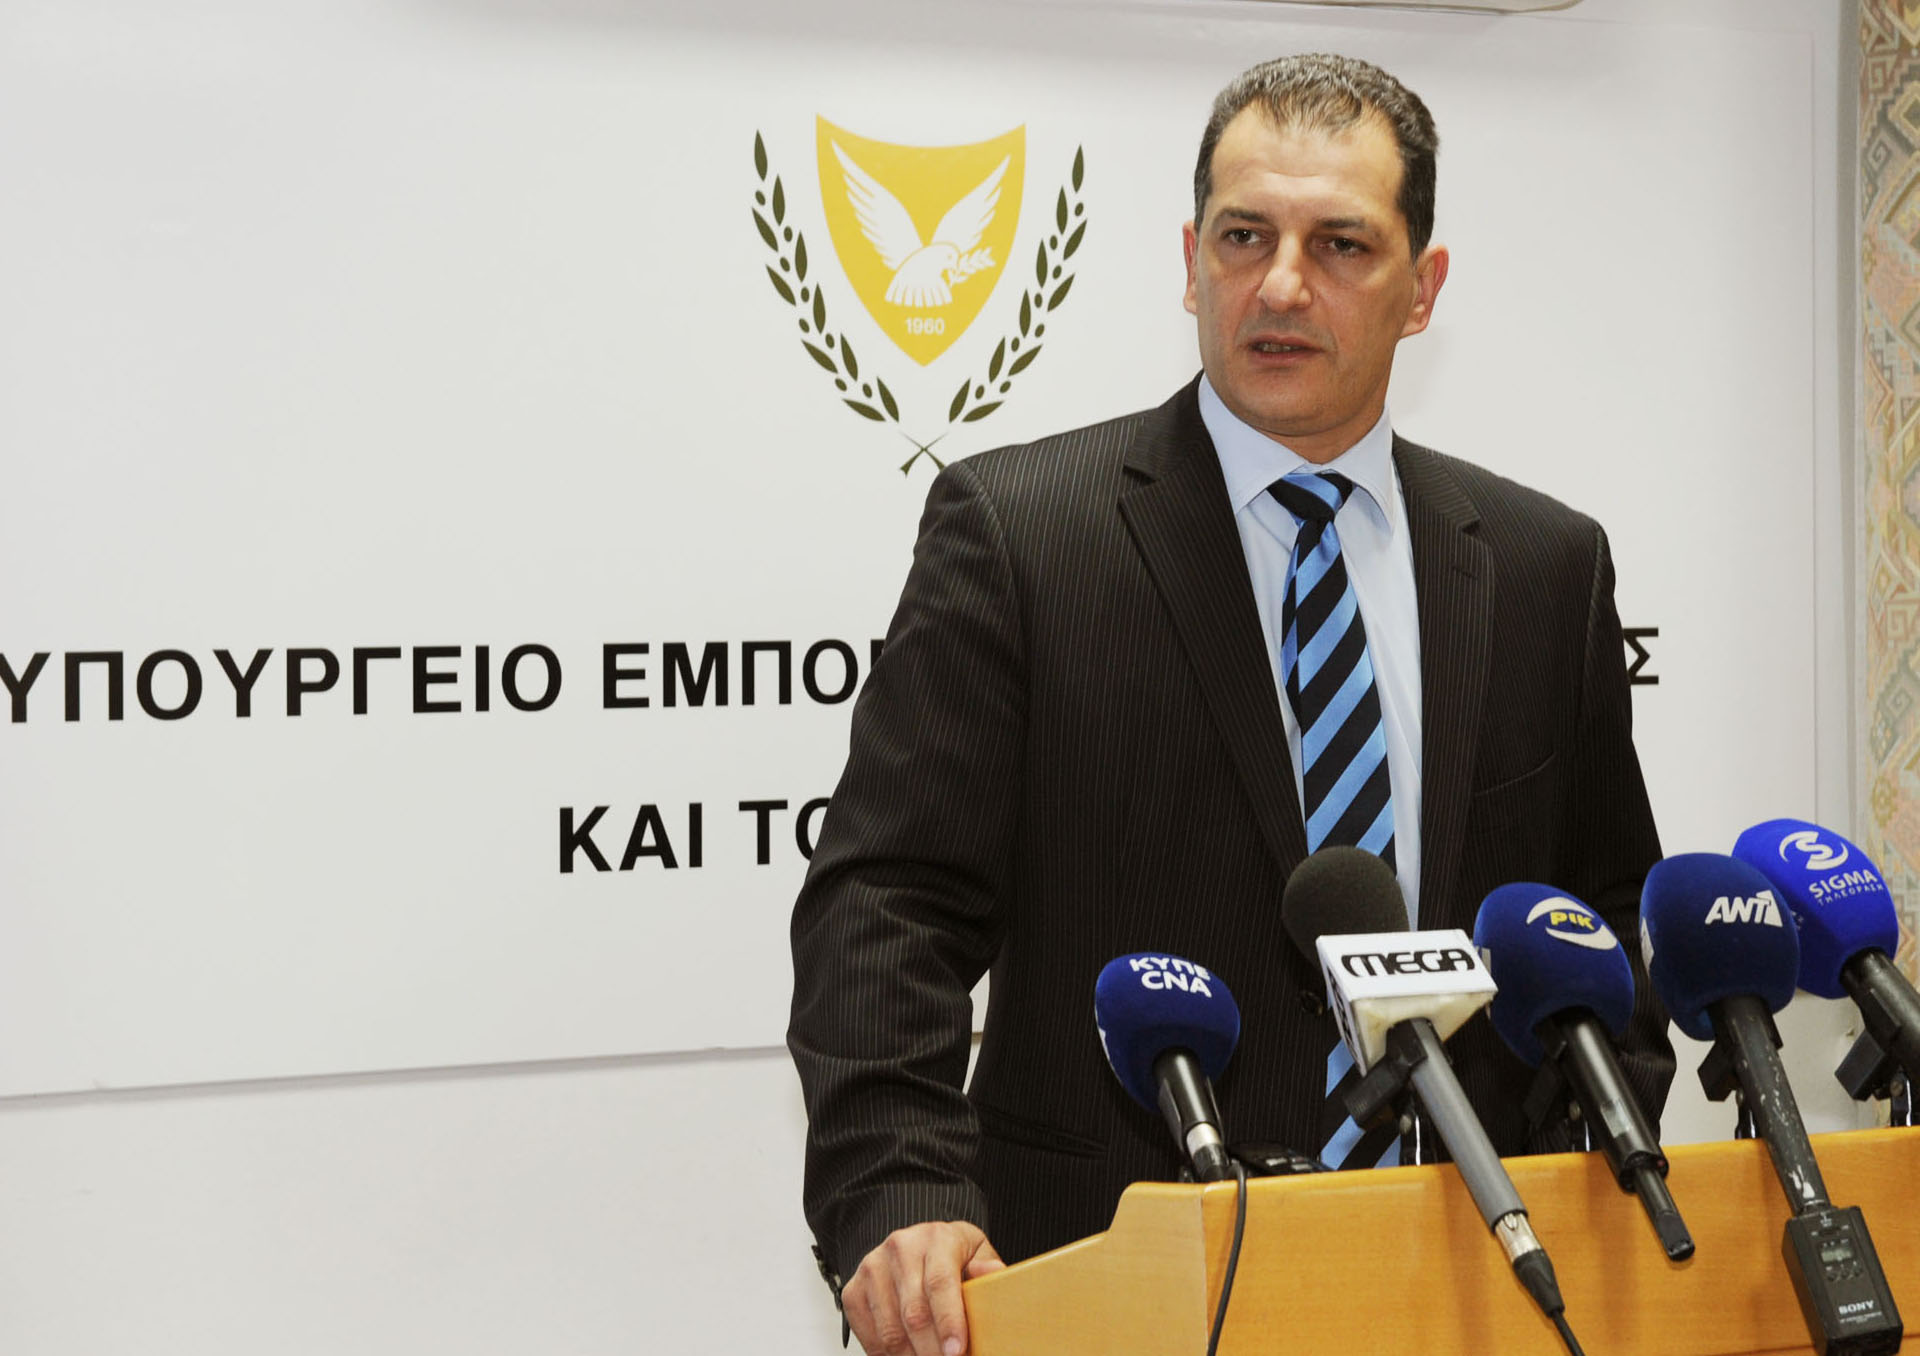 Tourism Minister to promote Cyprus tourism and investment opportunities in Berlin